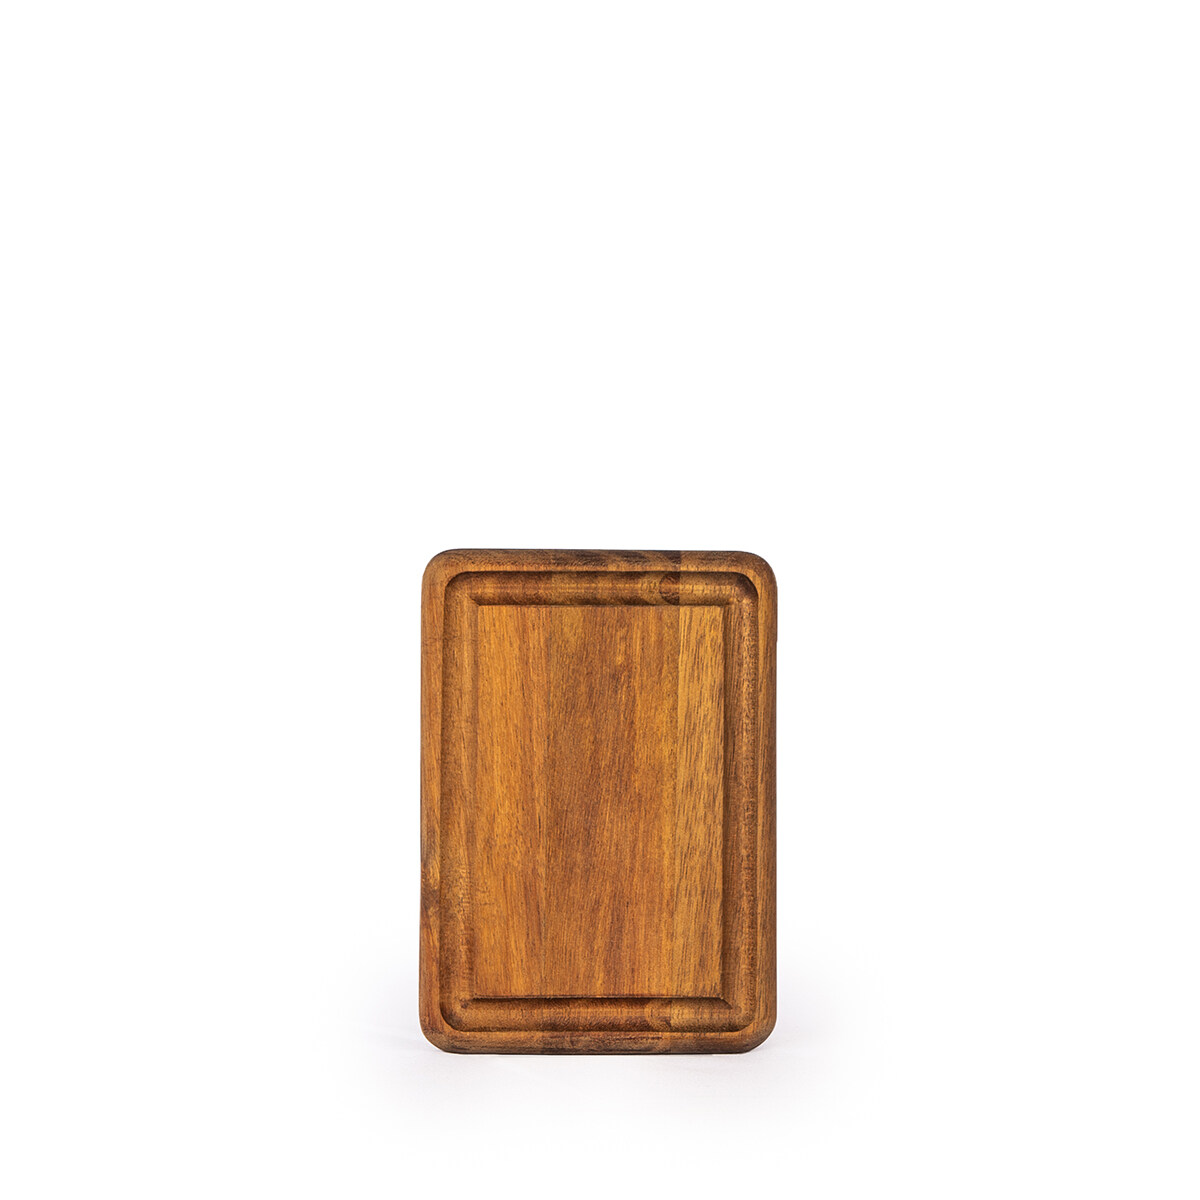 AIDEAS Cutting Board- YUMMY serving / chopping / wood / natural / platter / plate / acacia / dessert / coffee / dinner